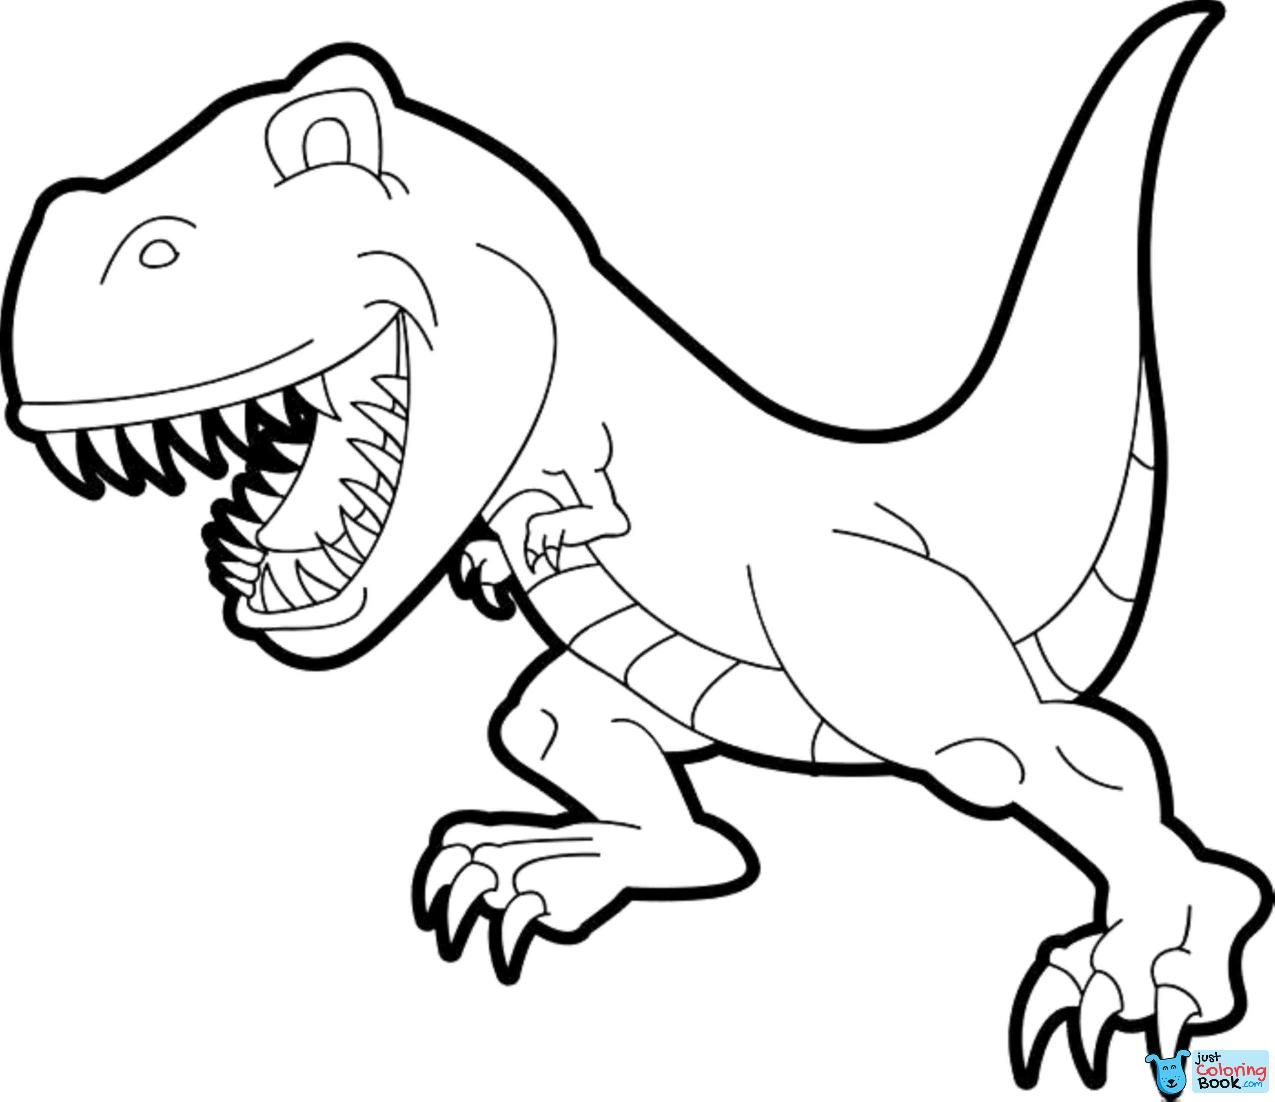 Simple T Rex Coloring Pages Kids Colouring Pages Dinosaur Within Cartoon Tyrannosaur Coloring Dinosaur Coloring Pages Dinosaur Coloring Animal Coloring Pages